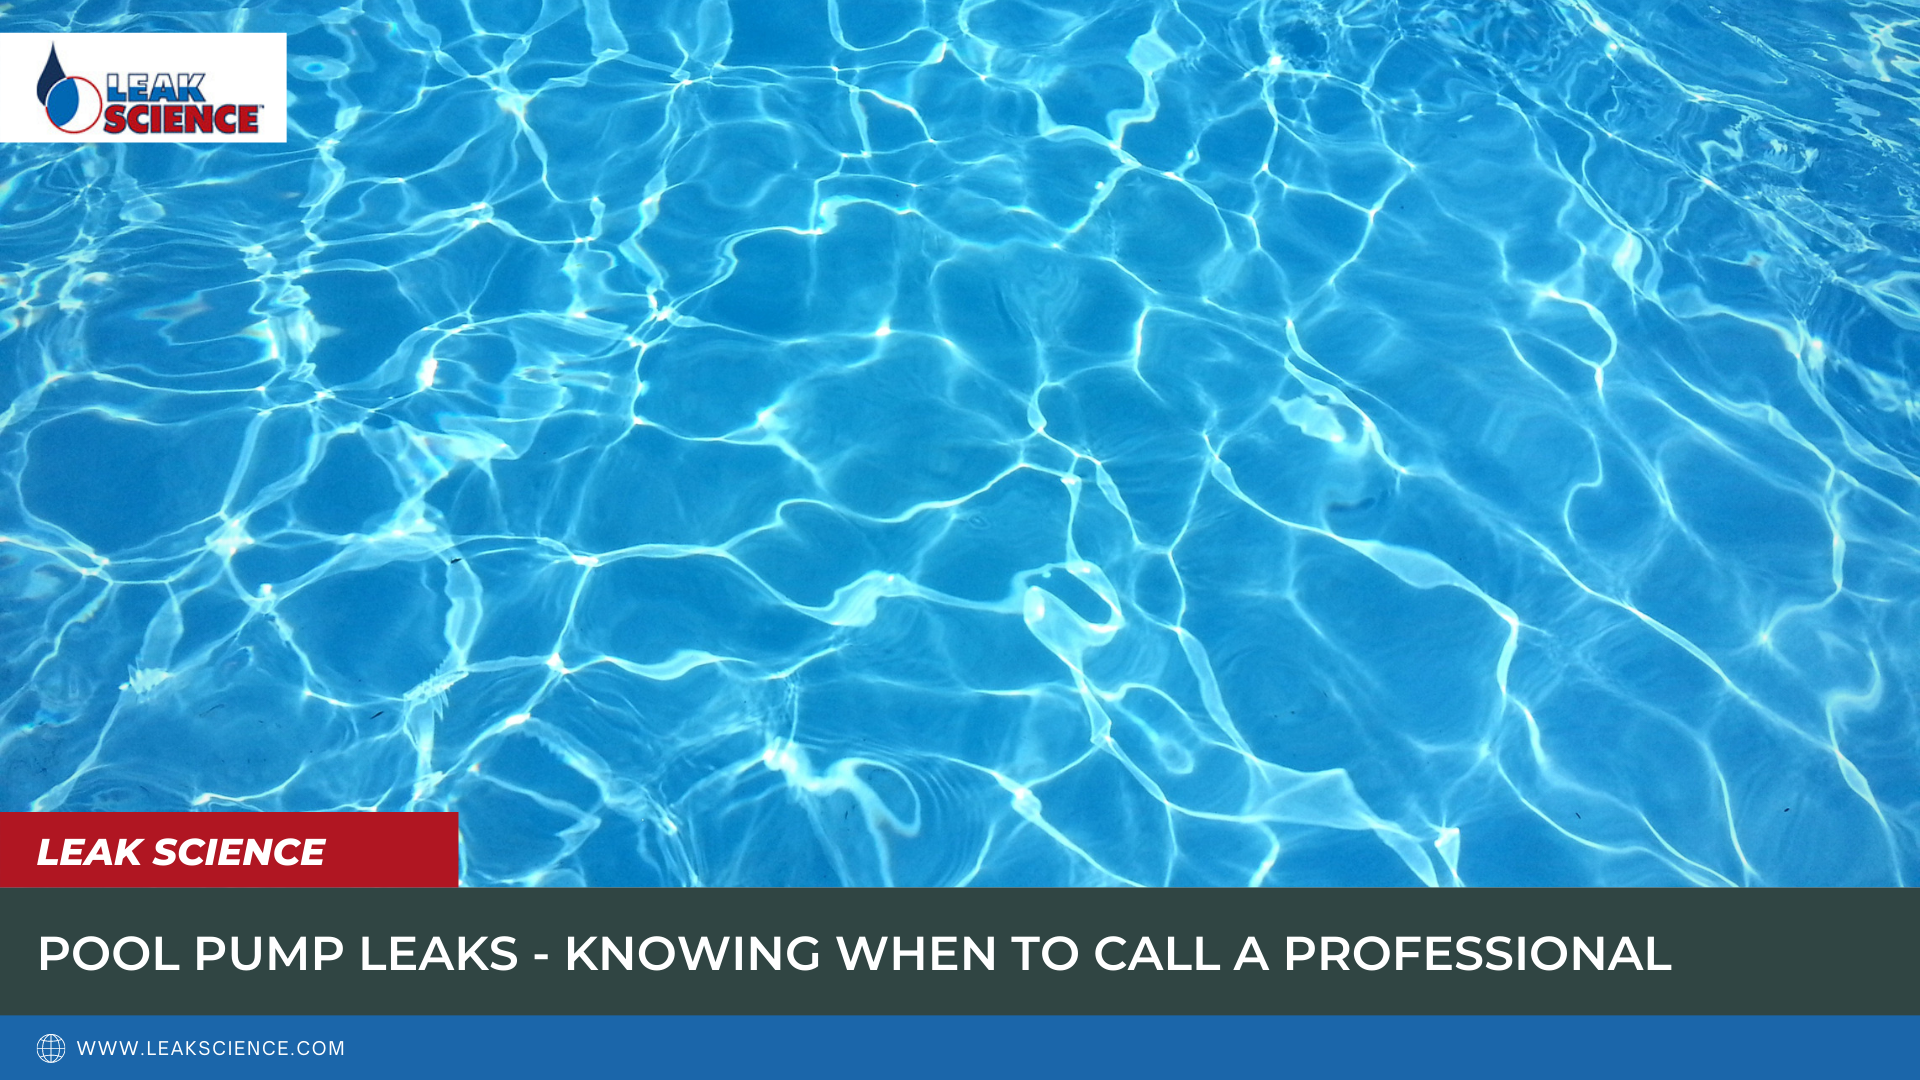 POOL PUMP LEAKS - KNOWING WHEN TO CALL A PROFESSIONAL